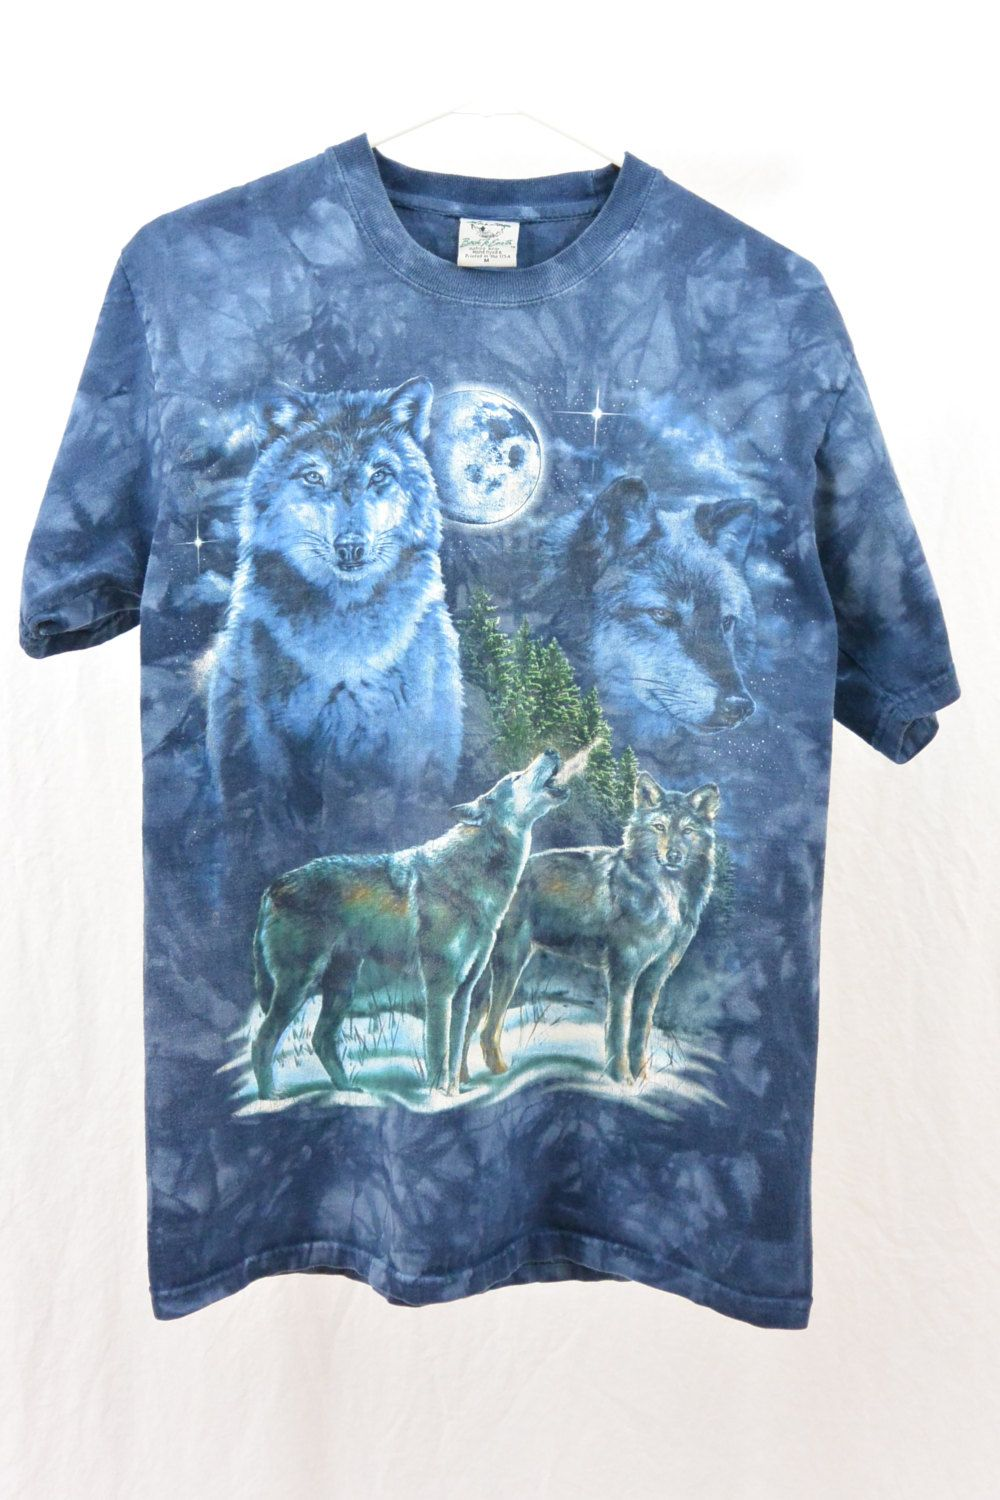 a98c6144 Vintage 90's Wolf T Shirt, Size Medium, Unisex, Hipster, Nature Clothing,  Moon, Tie Dye, Grunge, Tumblr Clothing, Animal T Shirt by  littleraisinvintage on ...